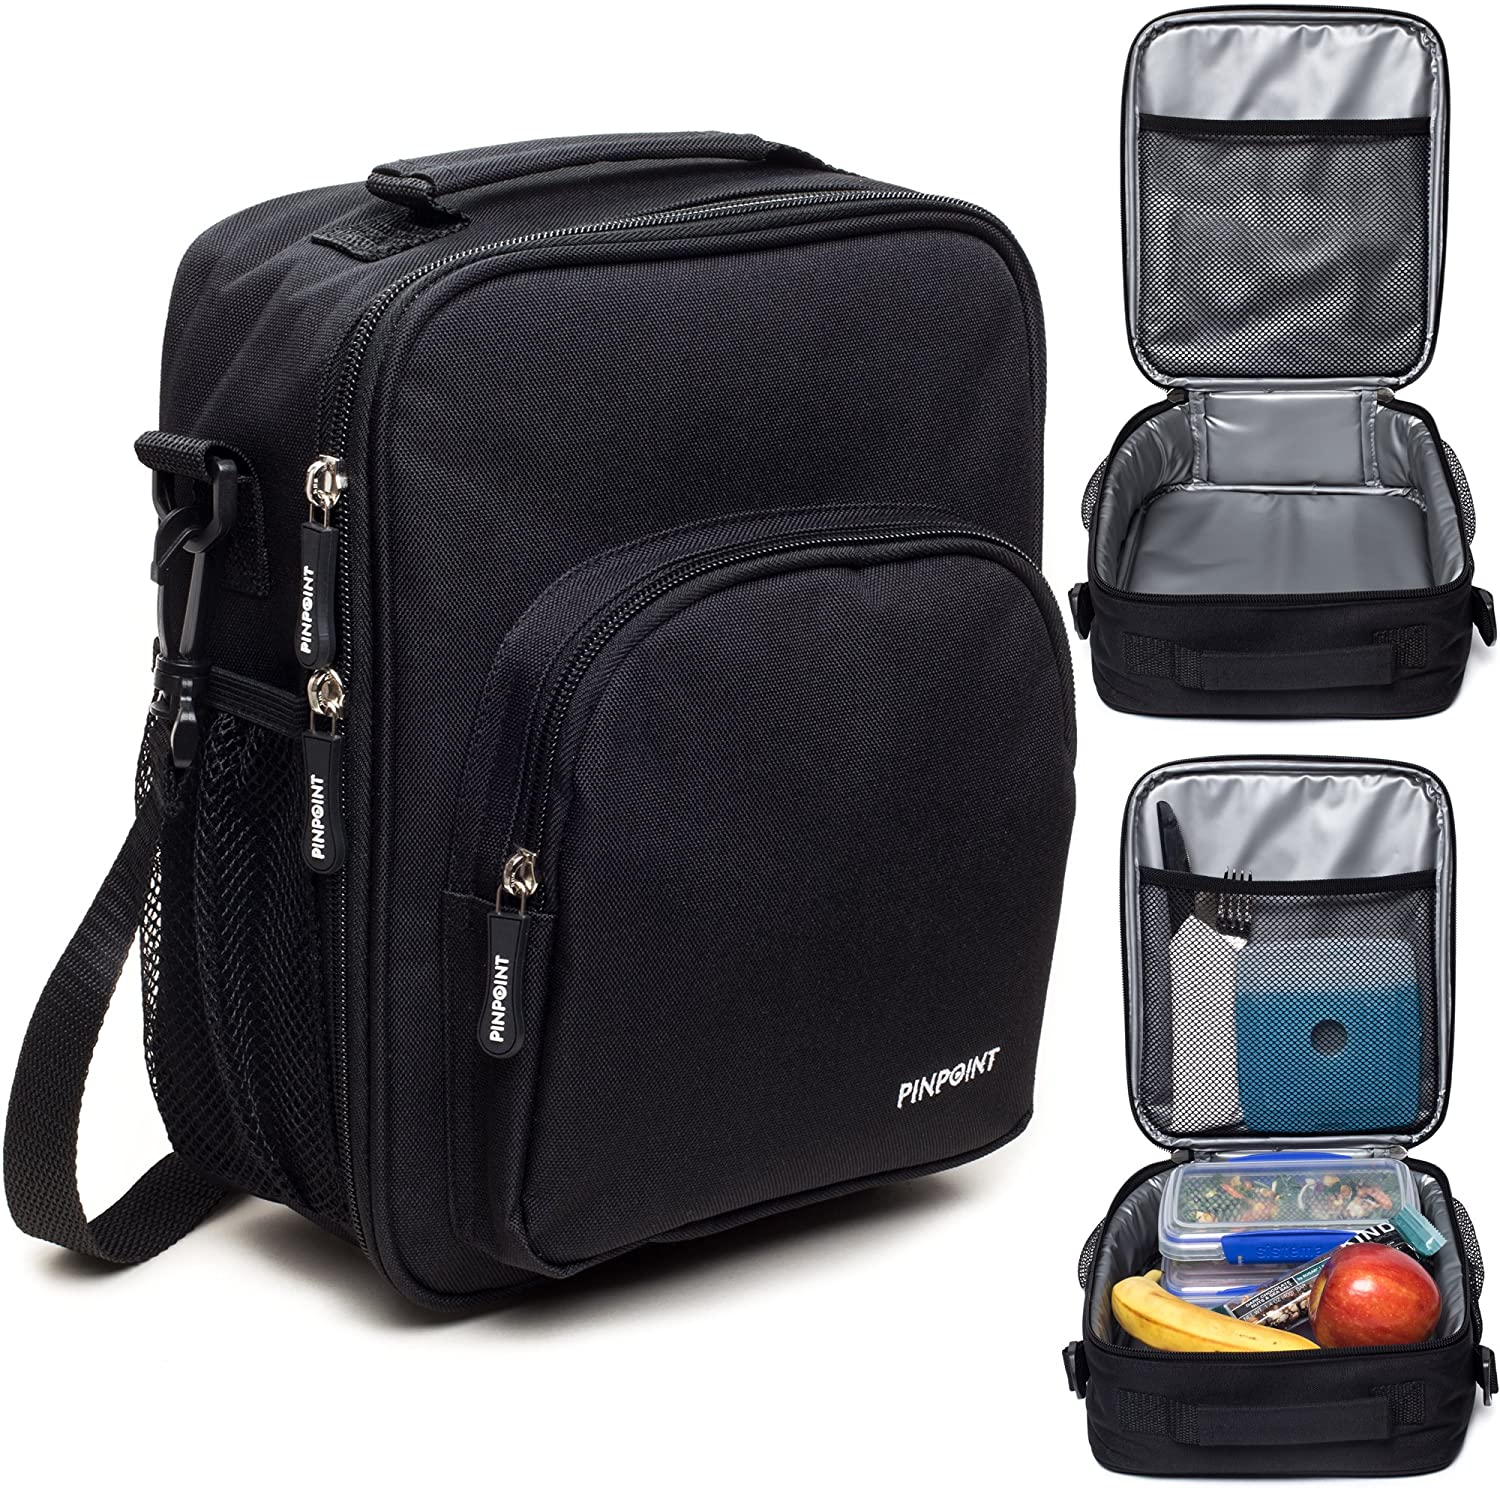 Insulated Thermal Lunchbox with Open Design - Classic Durable Lunch Box for Boys and Girls - Kids and Teens Lunch Box for School - Adults for Work or Office (Black)